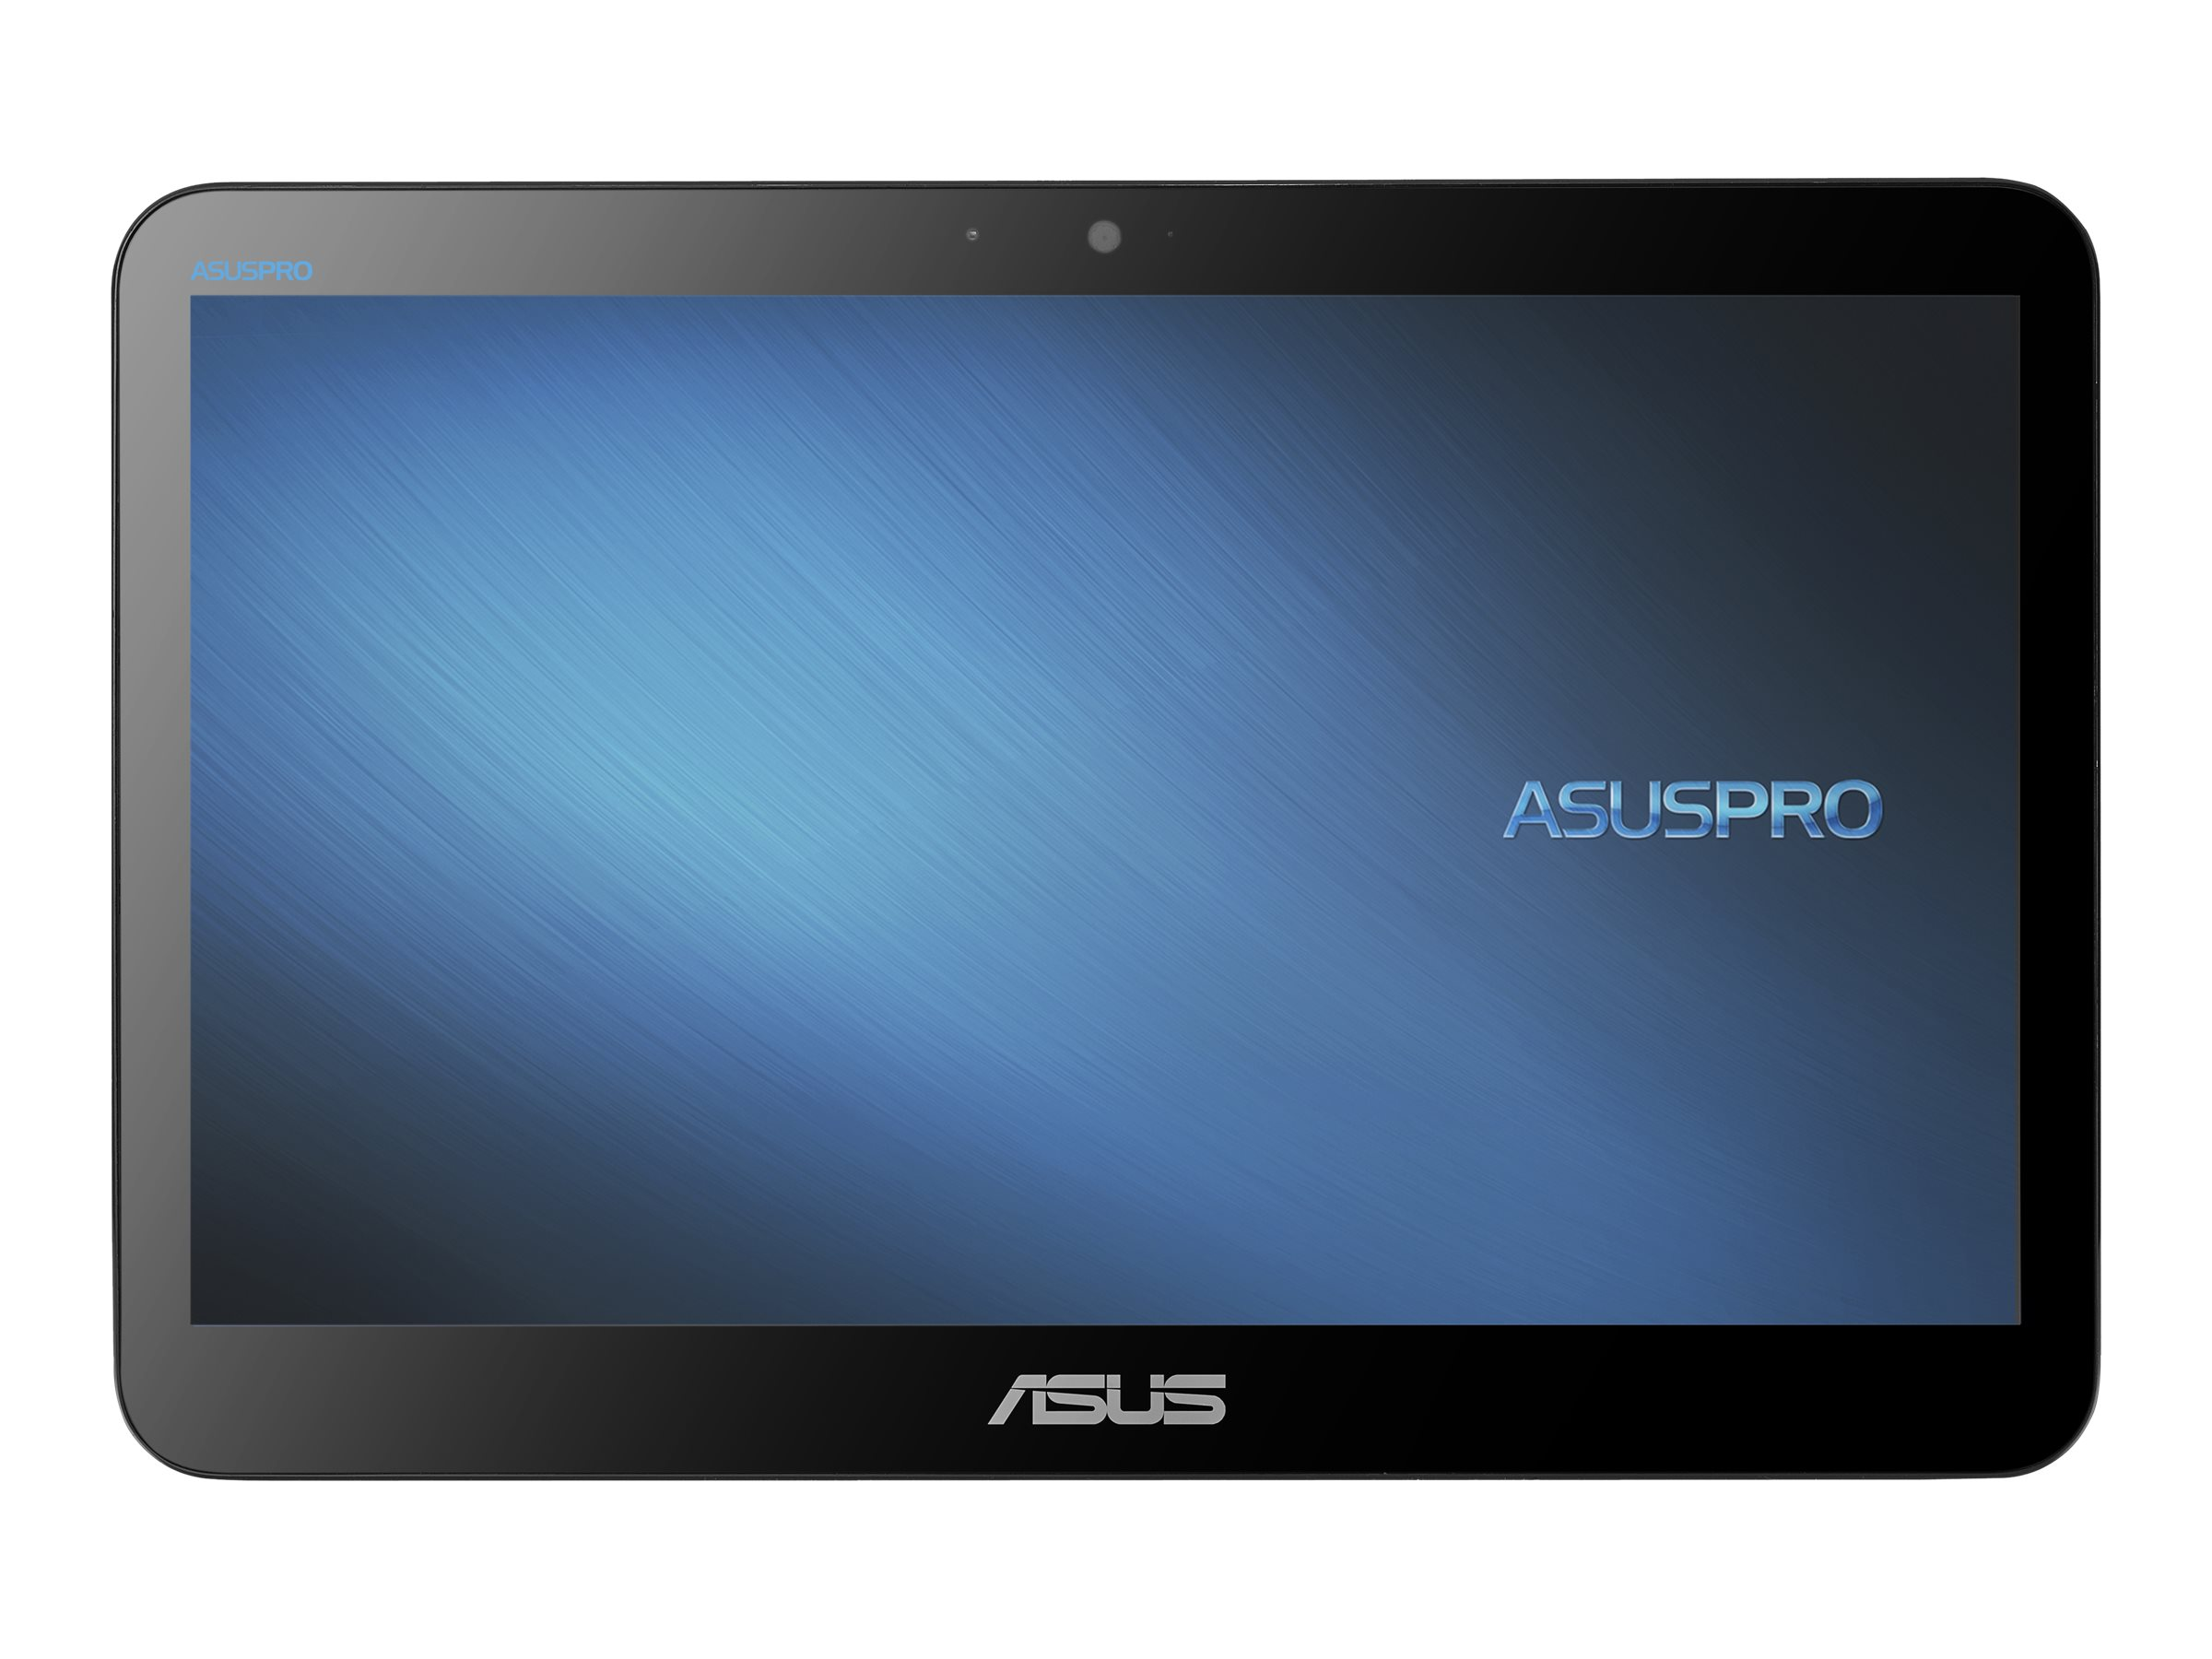 "ASUS All-in-One PC A41GAT - All-in-One (Komplettlösung) - Celeron N4000 / 1.1 GHz - RAM 4 GB - SSD 128 GB - UHD Graphics 600 - GigE - WLAN: Bluetooth, 802.11ac - Endless OS - Monitor: LED 39.6 cm (15.6"")"